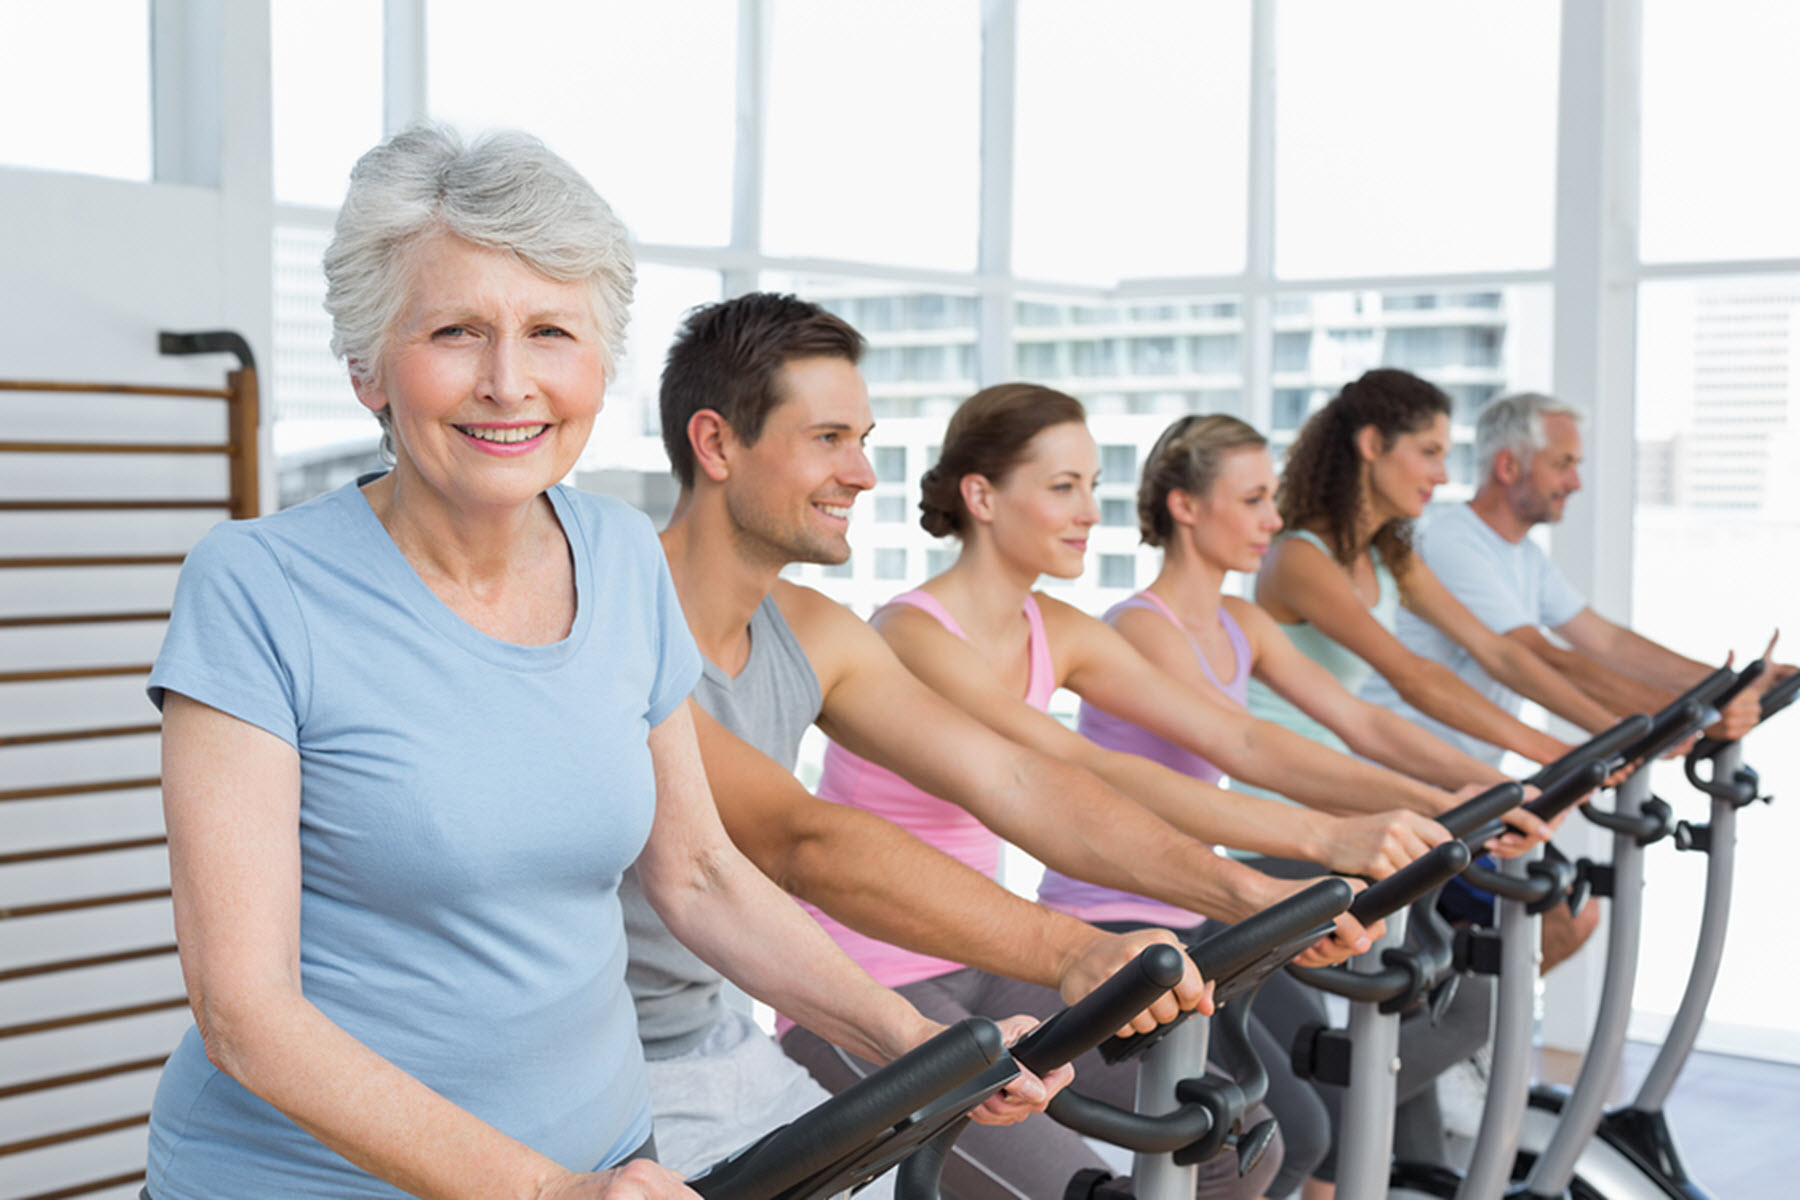 Elder Care in Encino CA: Exercise with COPD?